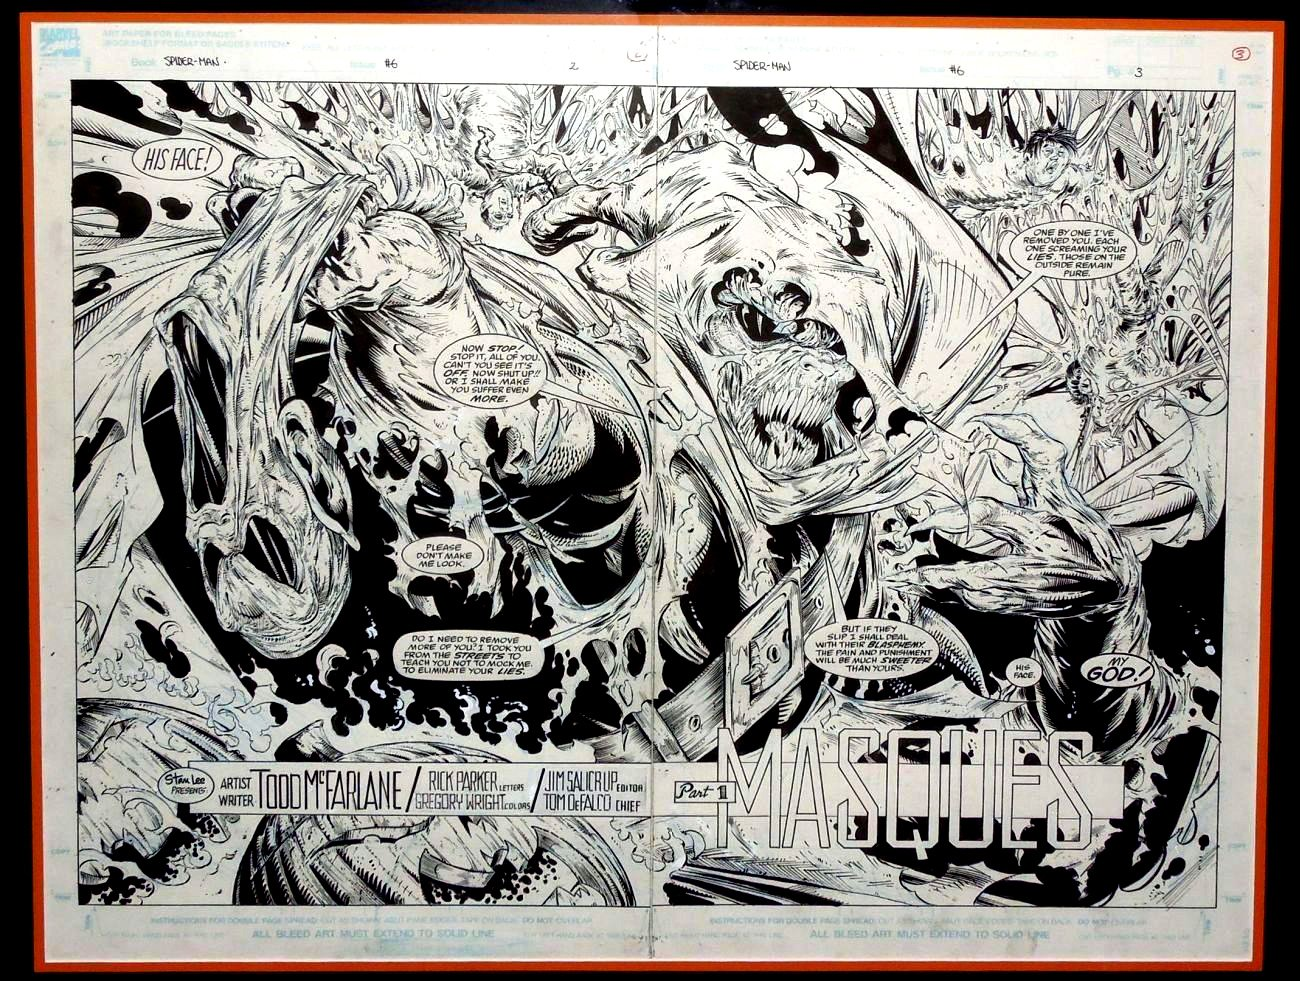 Spider-Man #6 p 2-3 Double Spread Splash (Very Large) SOLD SOLD SOLD!